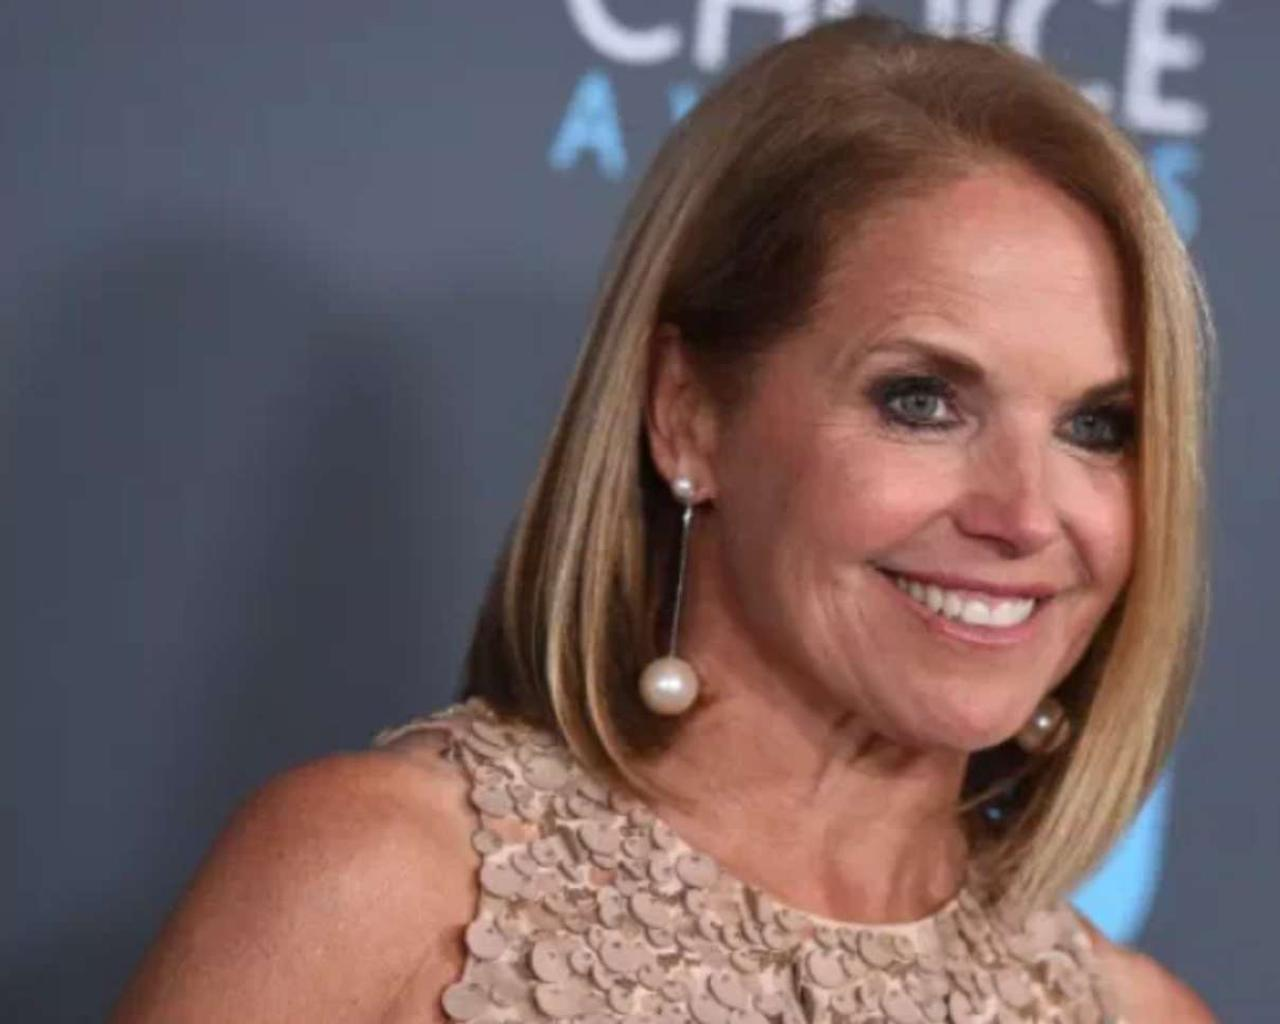 Katie Couric is controversial without makeup: how to look beautiful and embrace age.